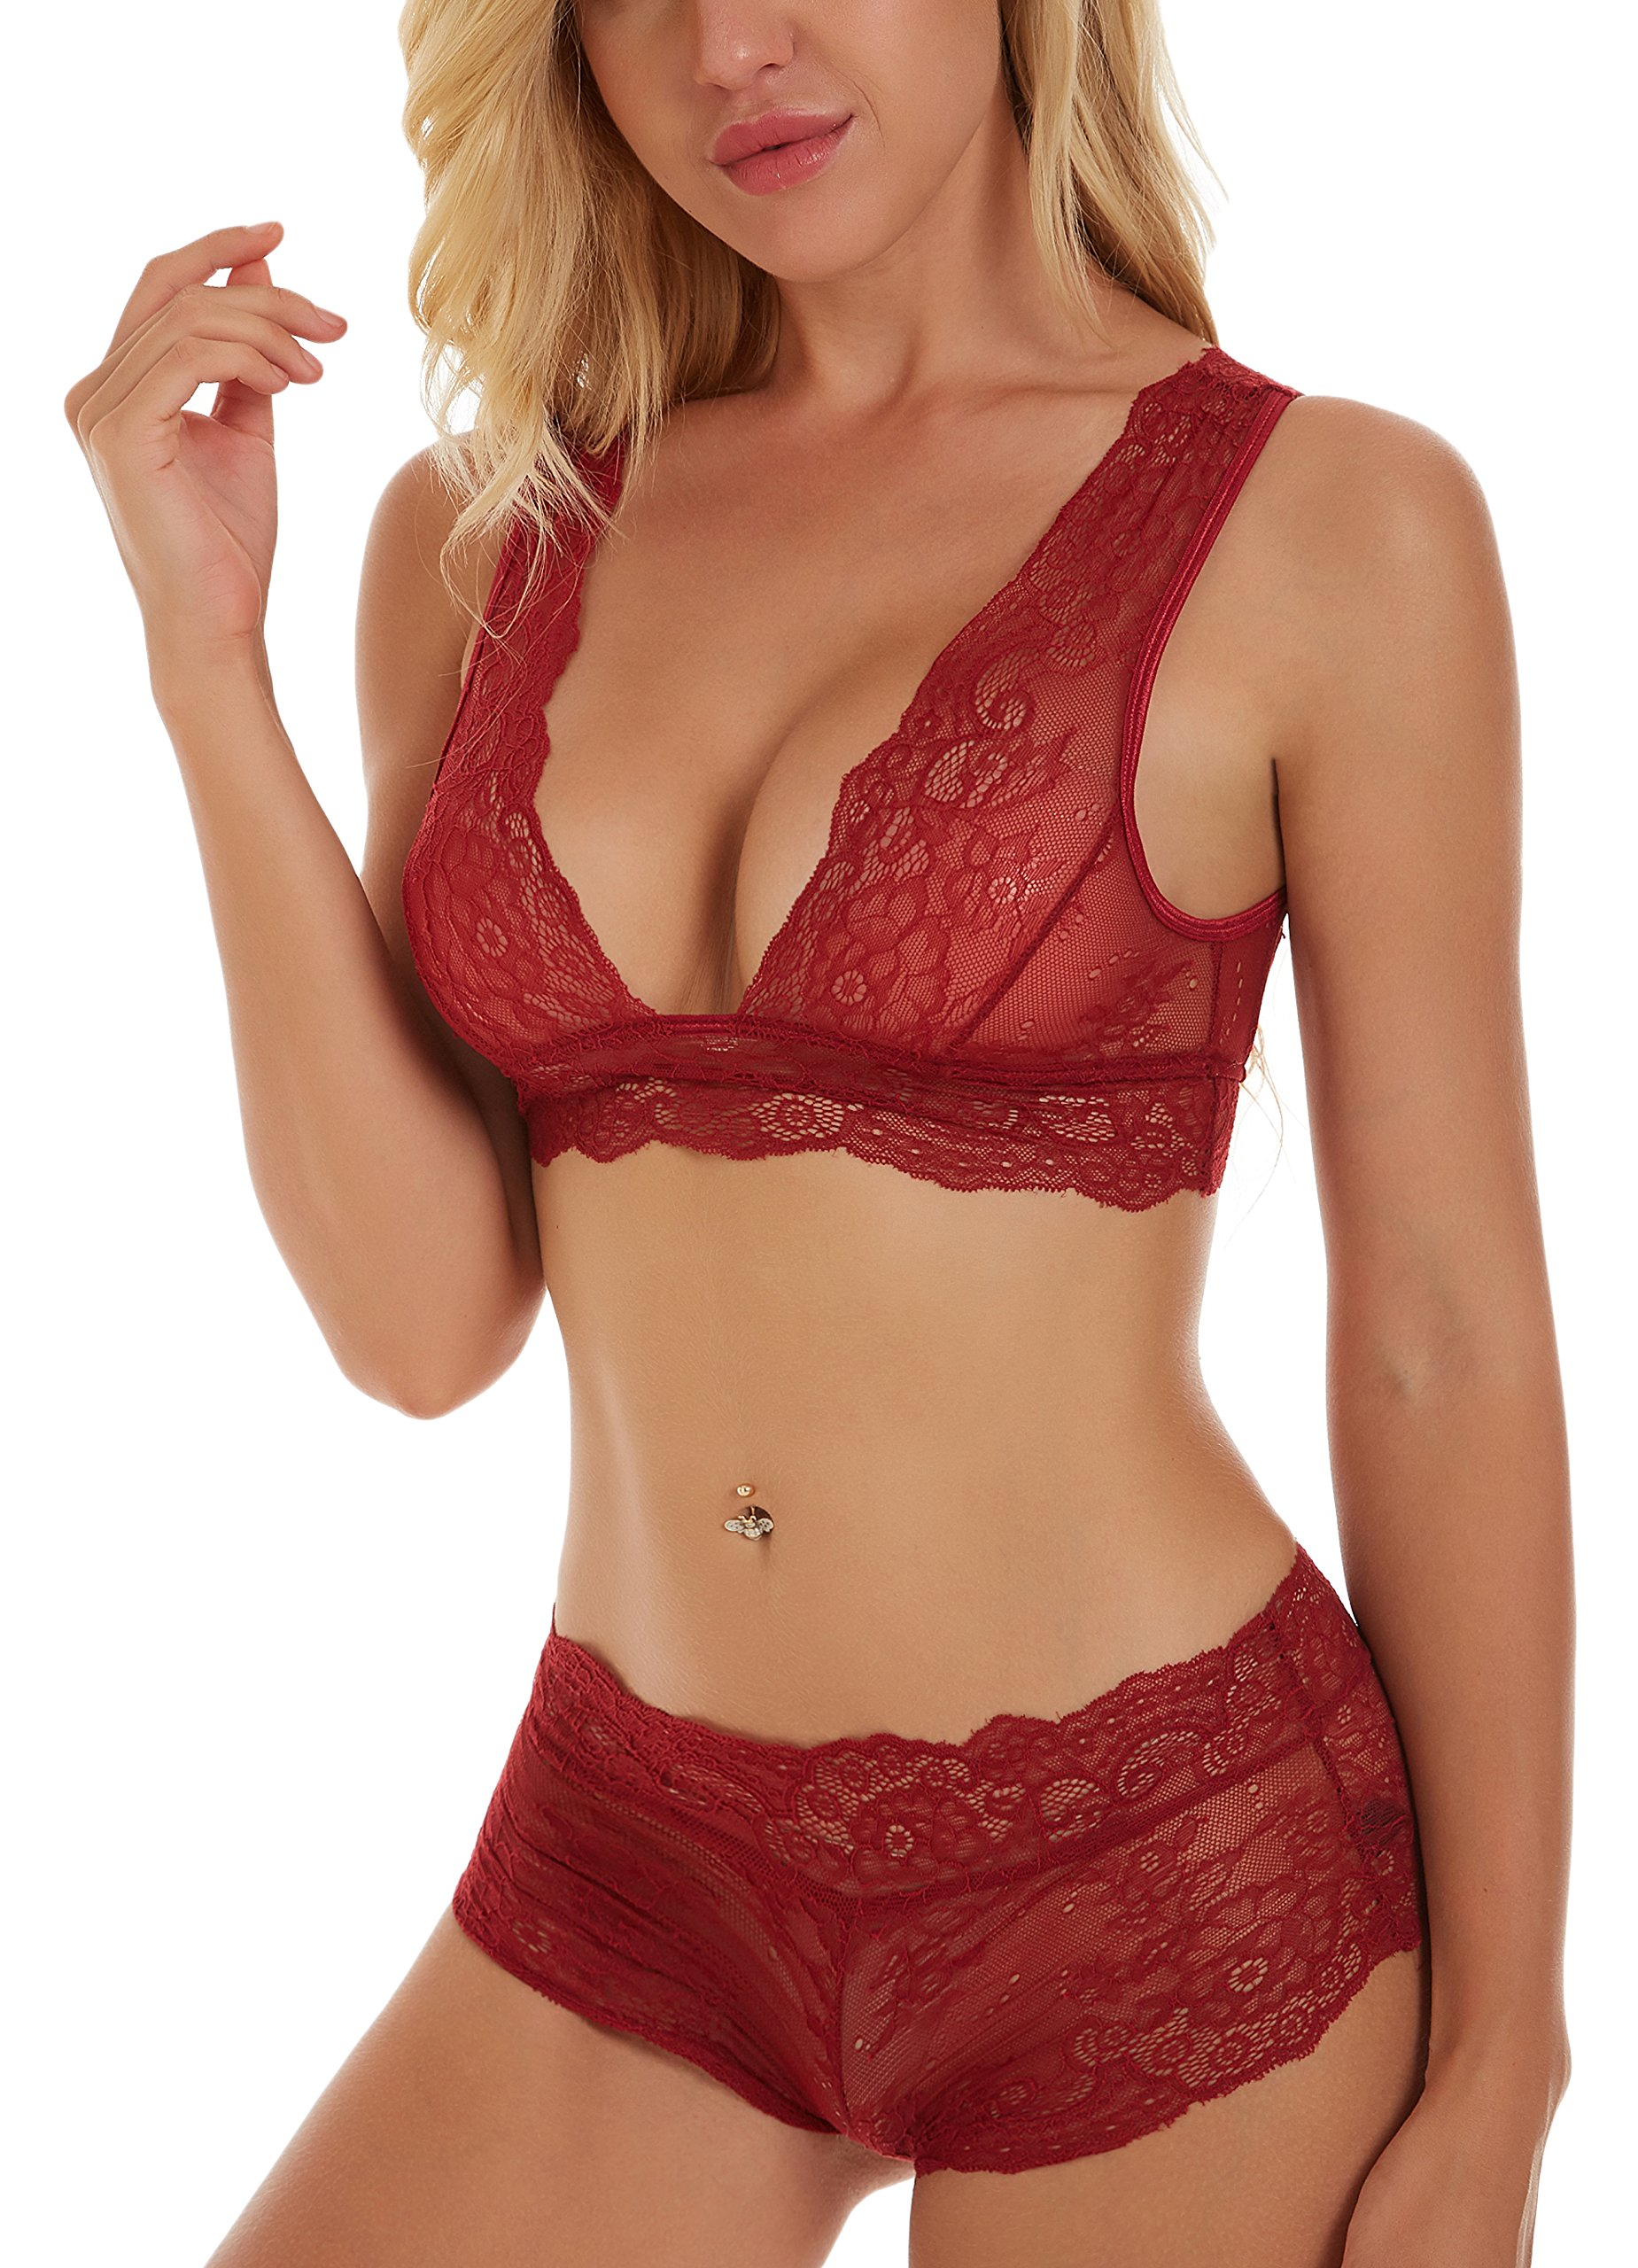 Unilove Sexy Lace Lingerie for Women Nightwear Babydoll Sexy Camisole Lingerie Set (Red,S)